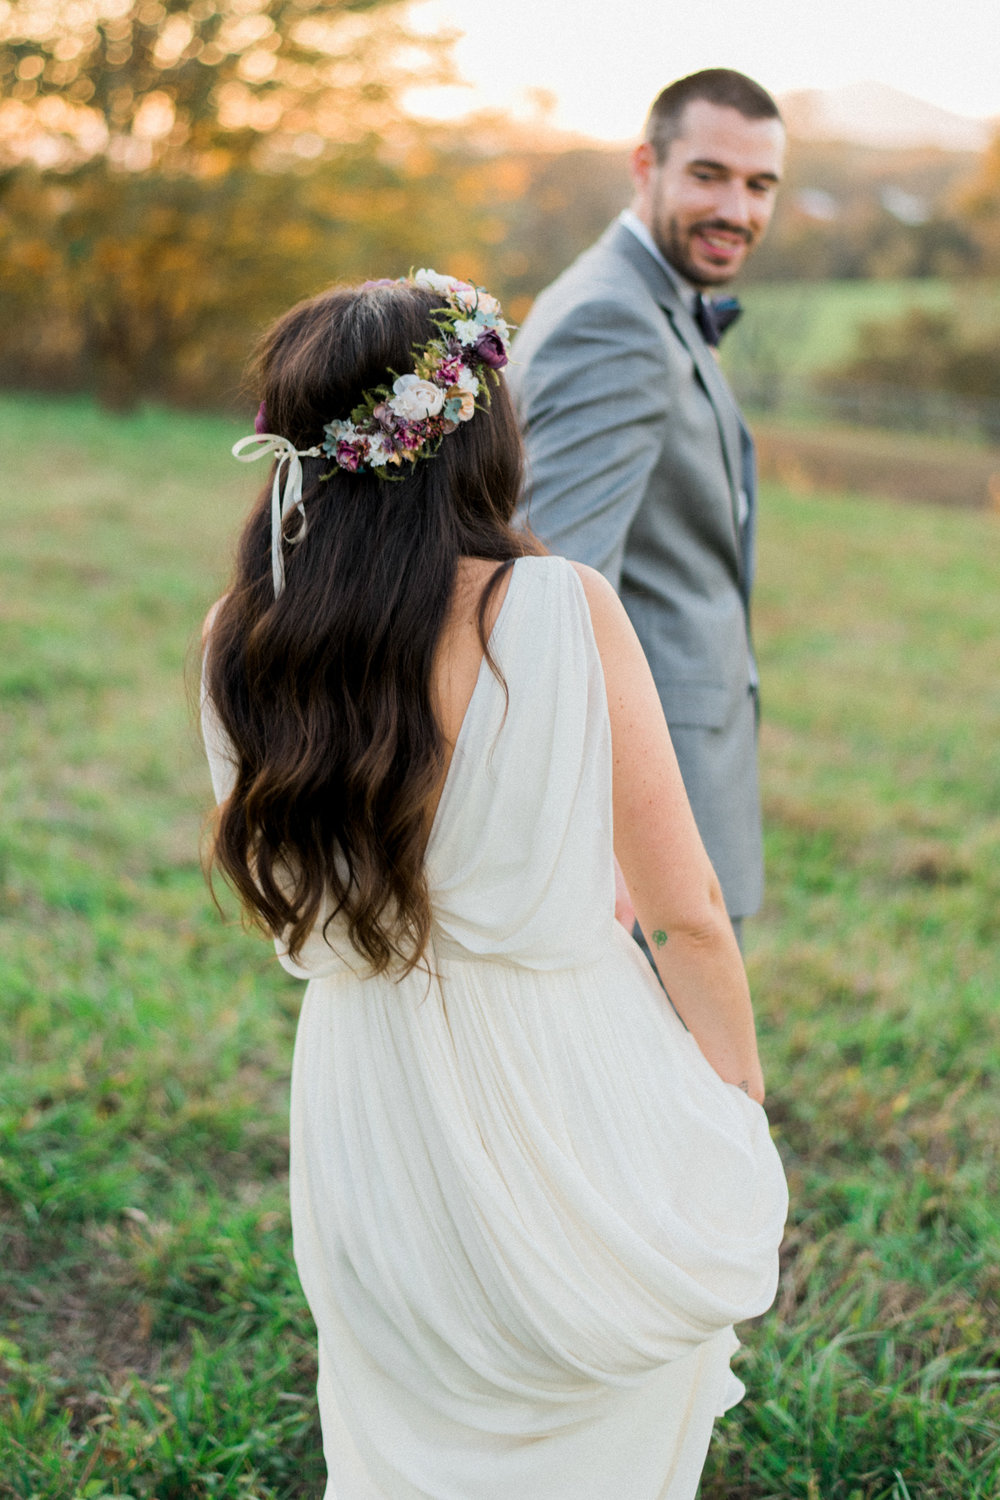 The_Trivium_Estate_Forest_VA_Wedding_Flower_Crown_boho_wedding_classic_wedding_Virginia_Wedding_photographer095.jpg